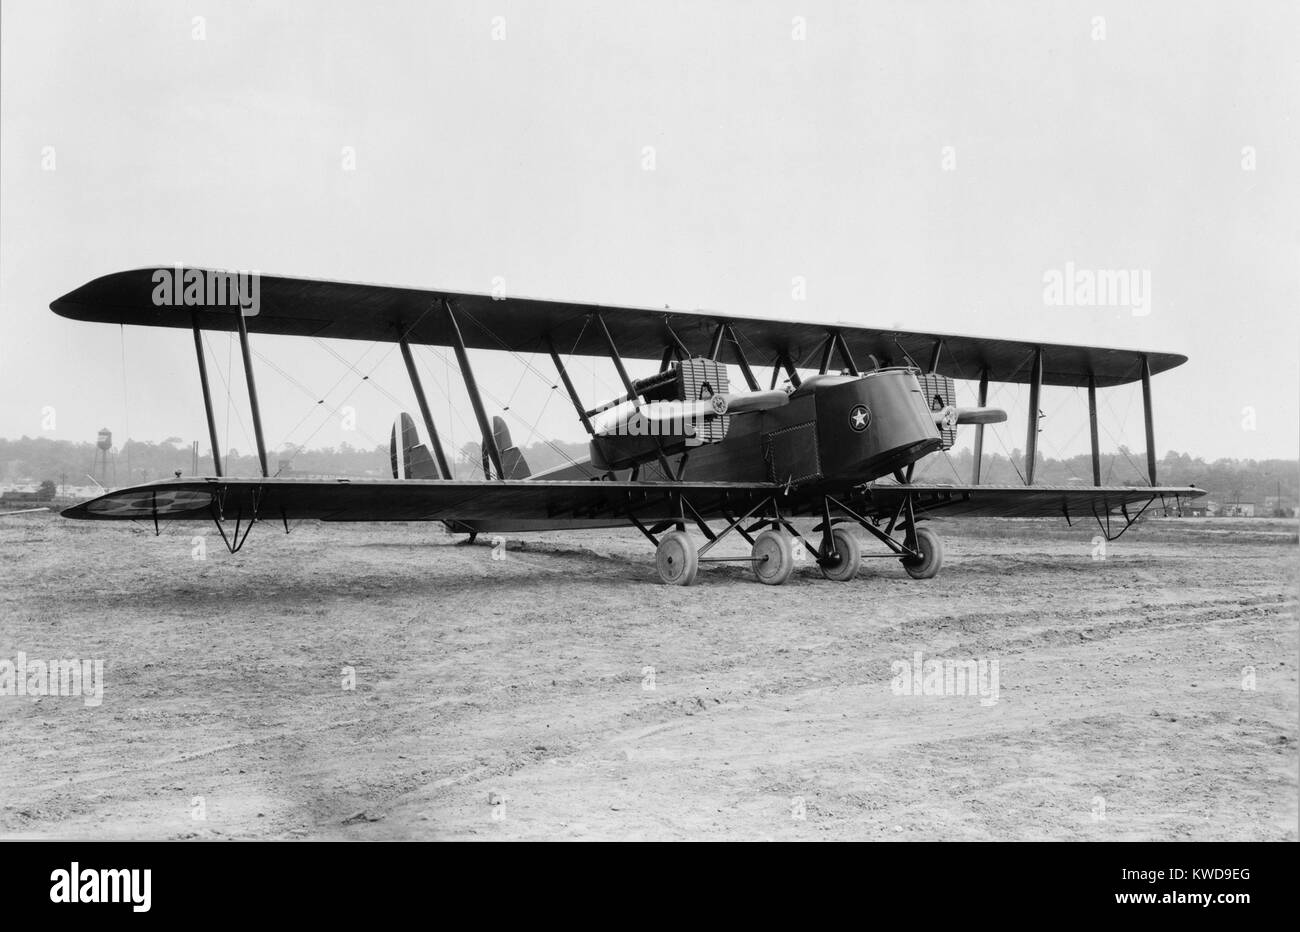 British Handley Page transport bi-plane refitted for U.S. Air Mail Service in 1921. It was an early biplane bomber - Stock Image